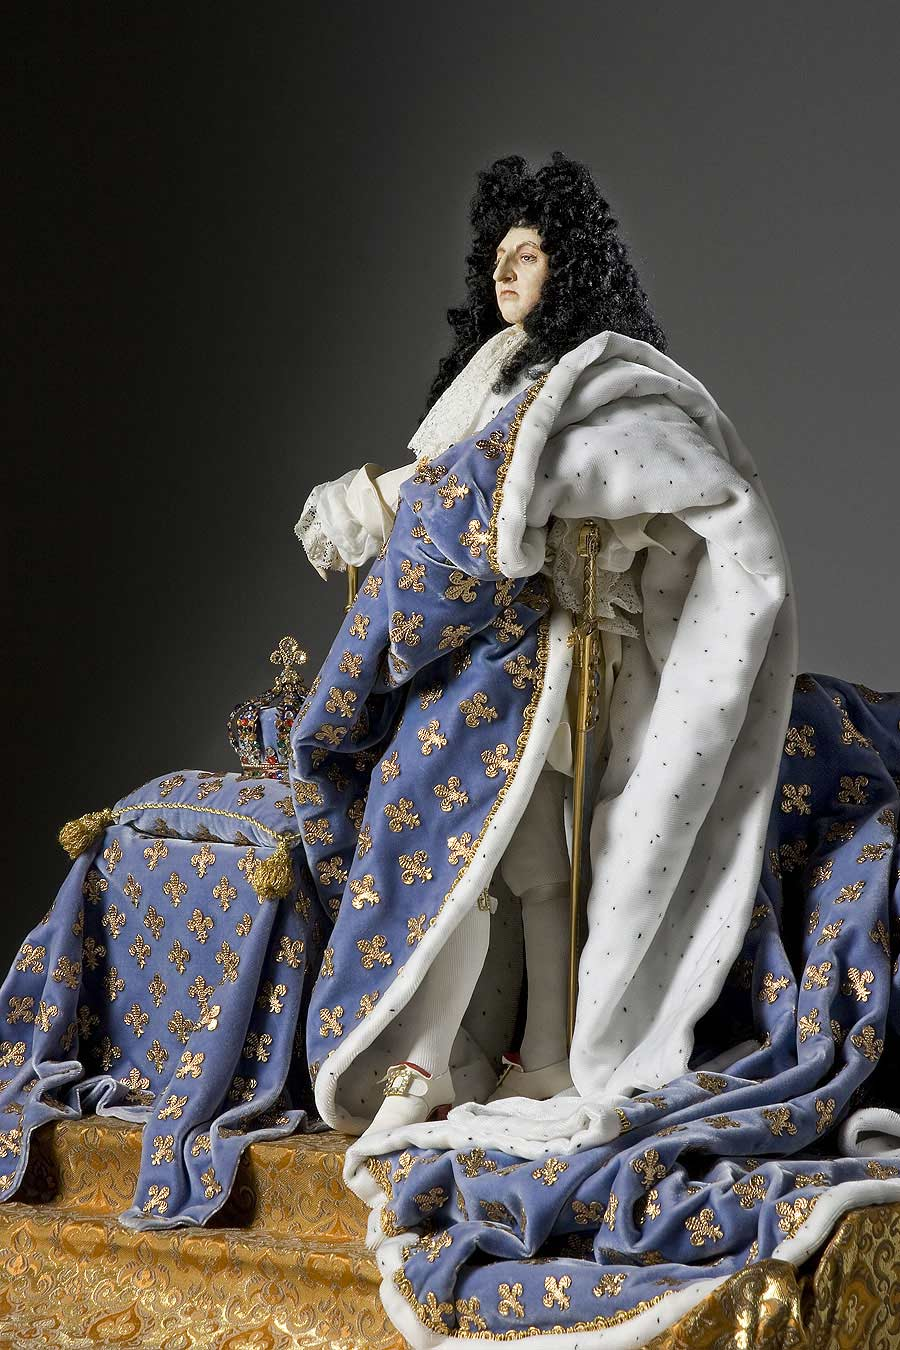 Full length color image of Louis XIV (robes of state) aka. Louis XIV of France,